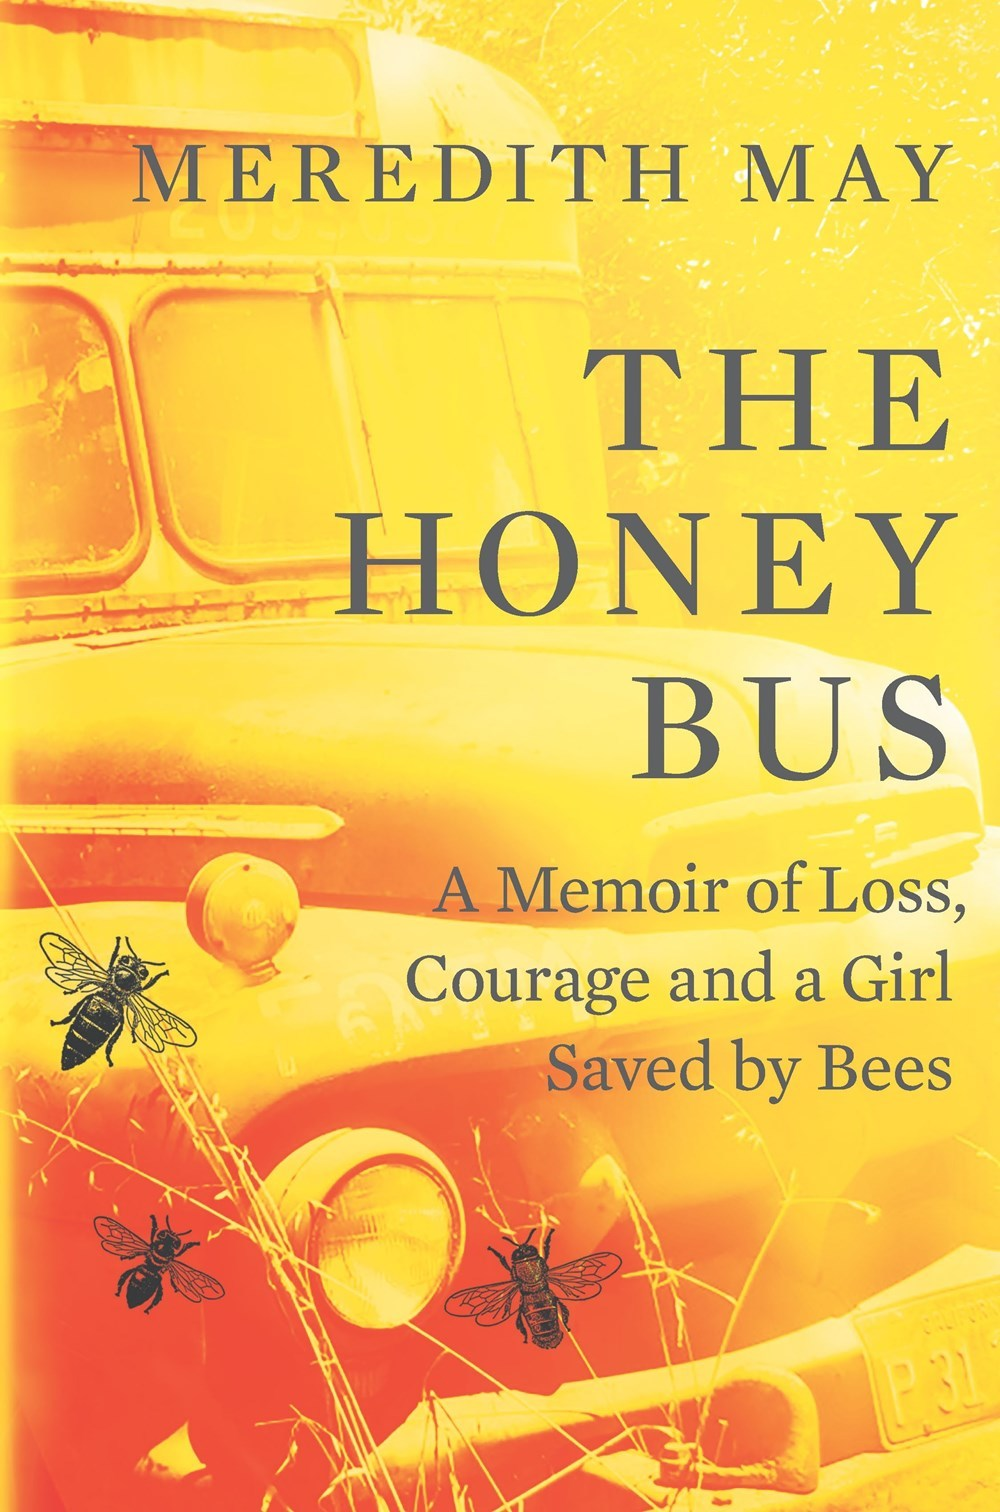 The Honey Bus by Meredith May